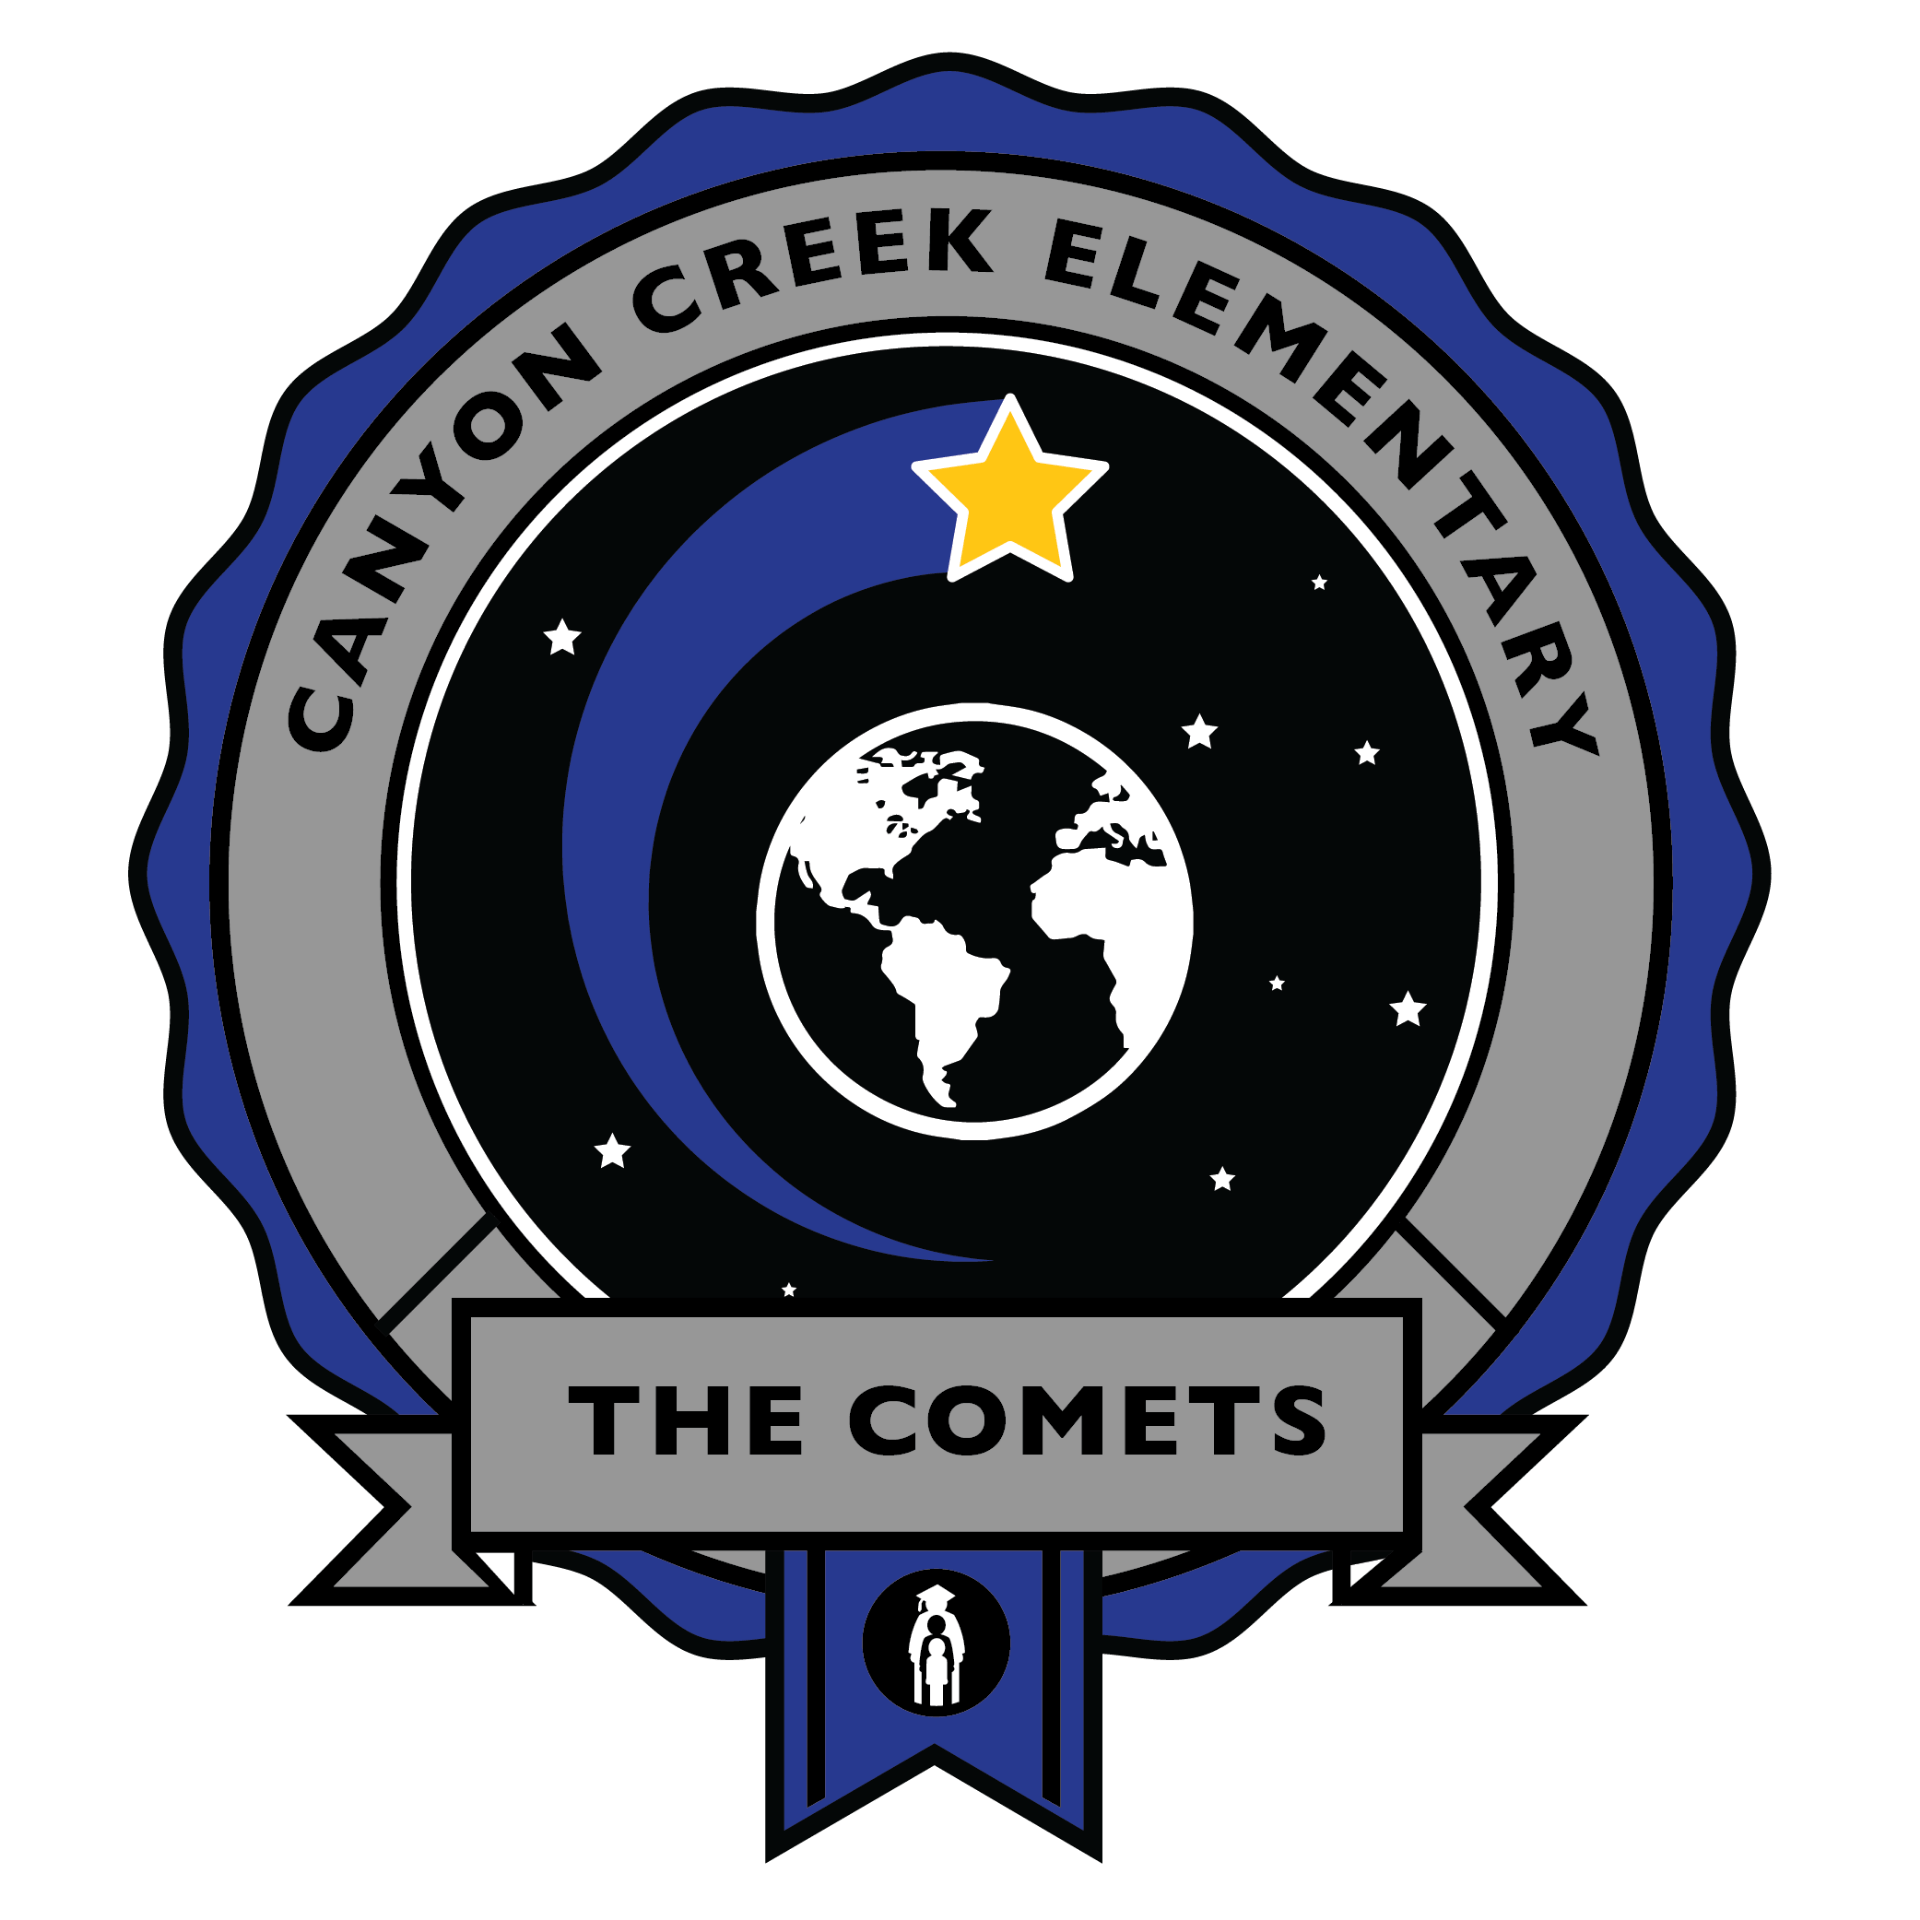 Canyon Creek Comets, Orbiting in Excellence